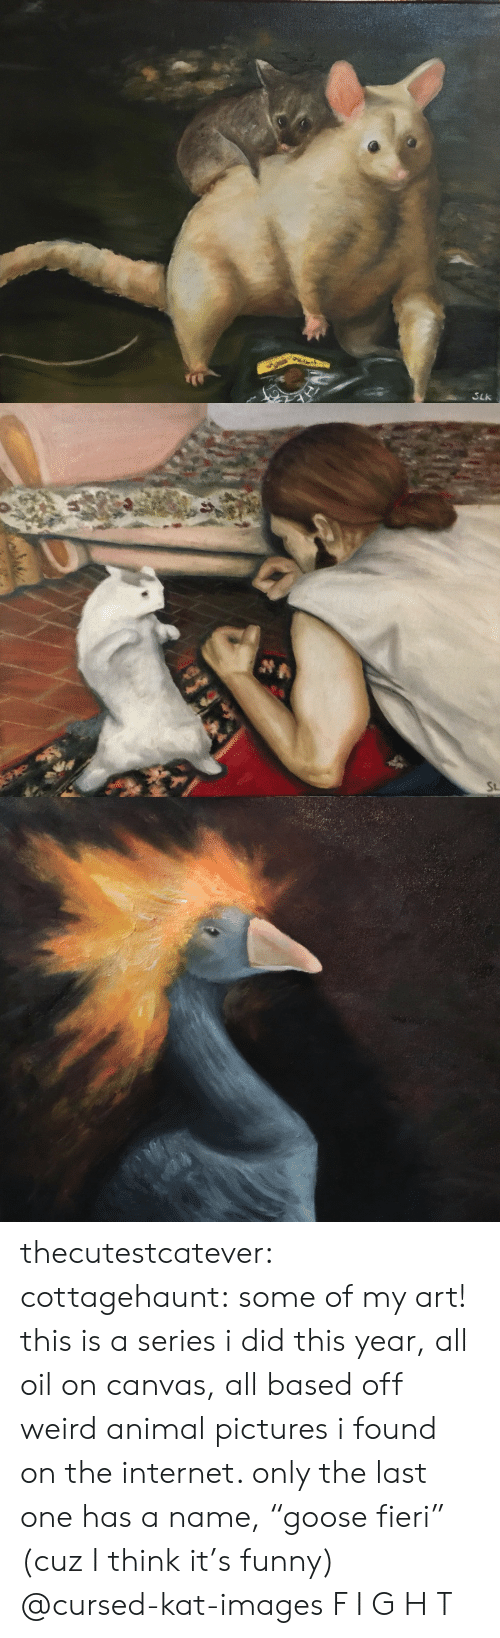 "Funny, Internet, and Tumblr: SLk   St thecutestcatever:  cottagehaunt:  some of my art! this is a series i did this year, all oil on canvas, all based off weird animal pictures i found on the internet. only the last one has a name, ""goose fieri"" (cuz I think it's funny)  @cursed-kat-images   F I G H T"